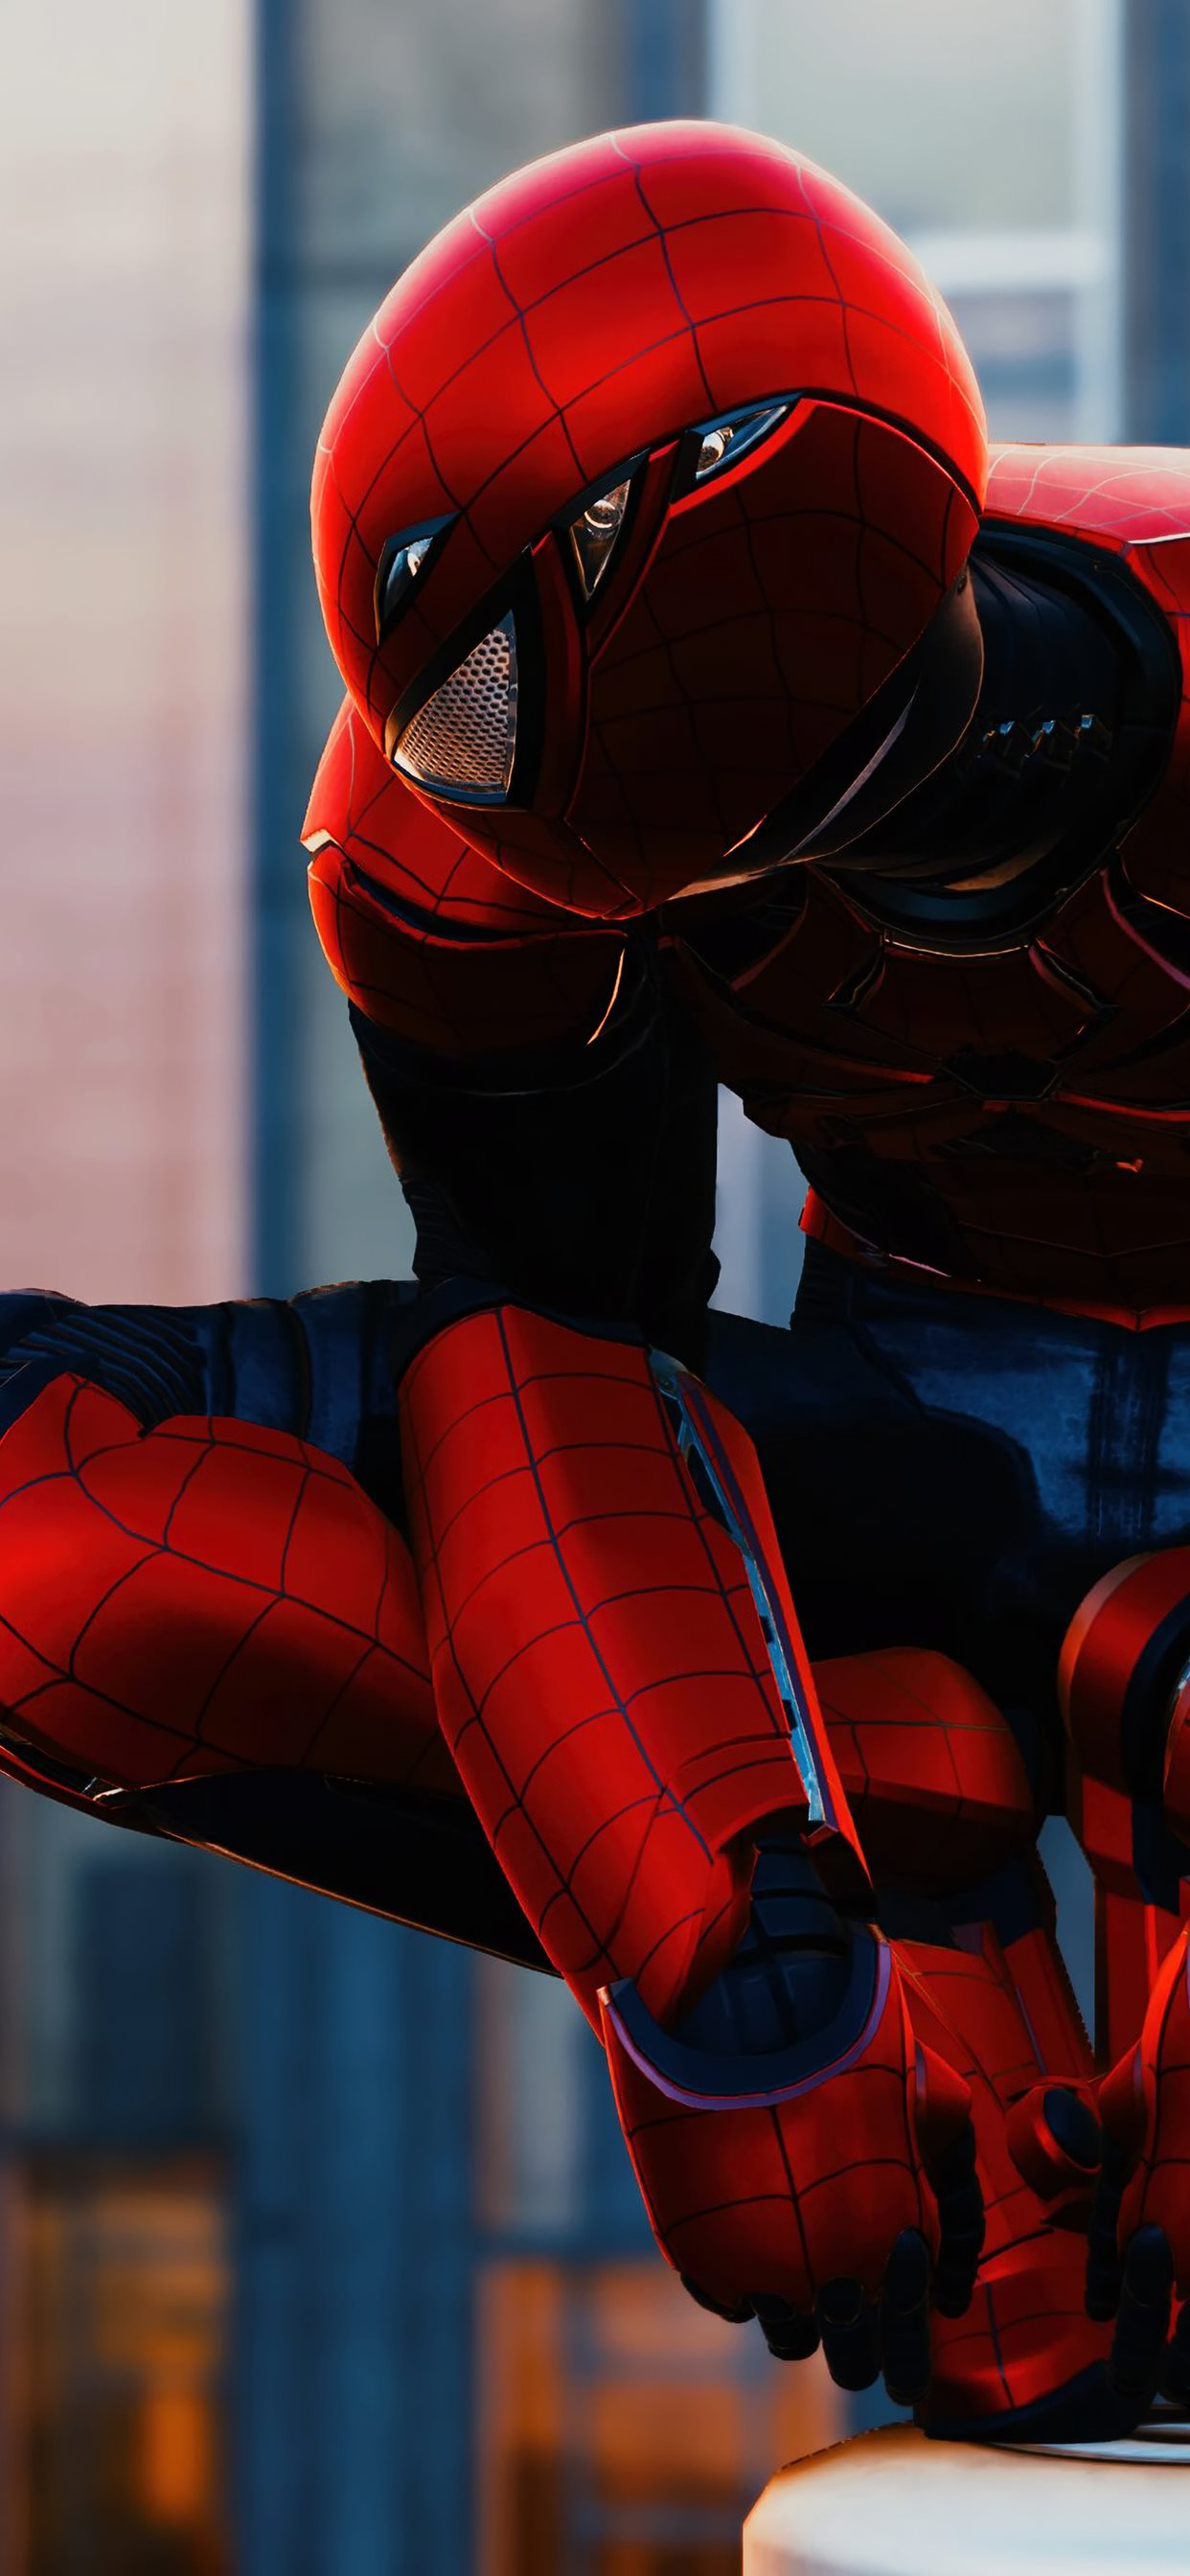 Marvel Spiderman Ps4 Game 4k Iphone Wallpapers Free Download